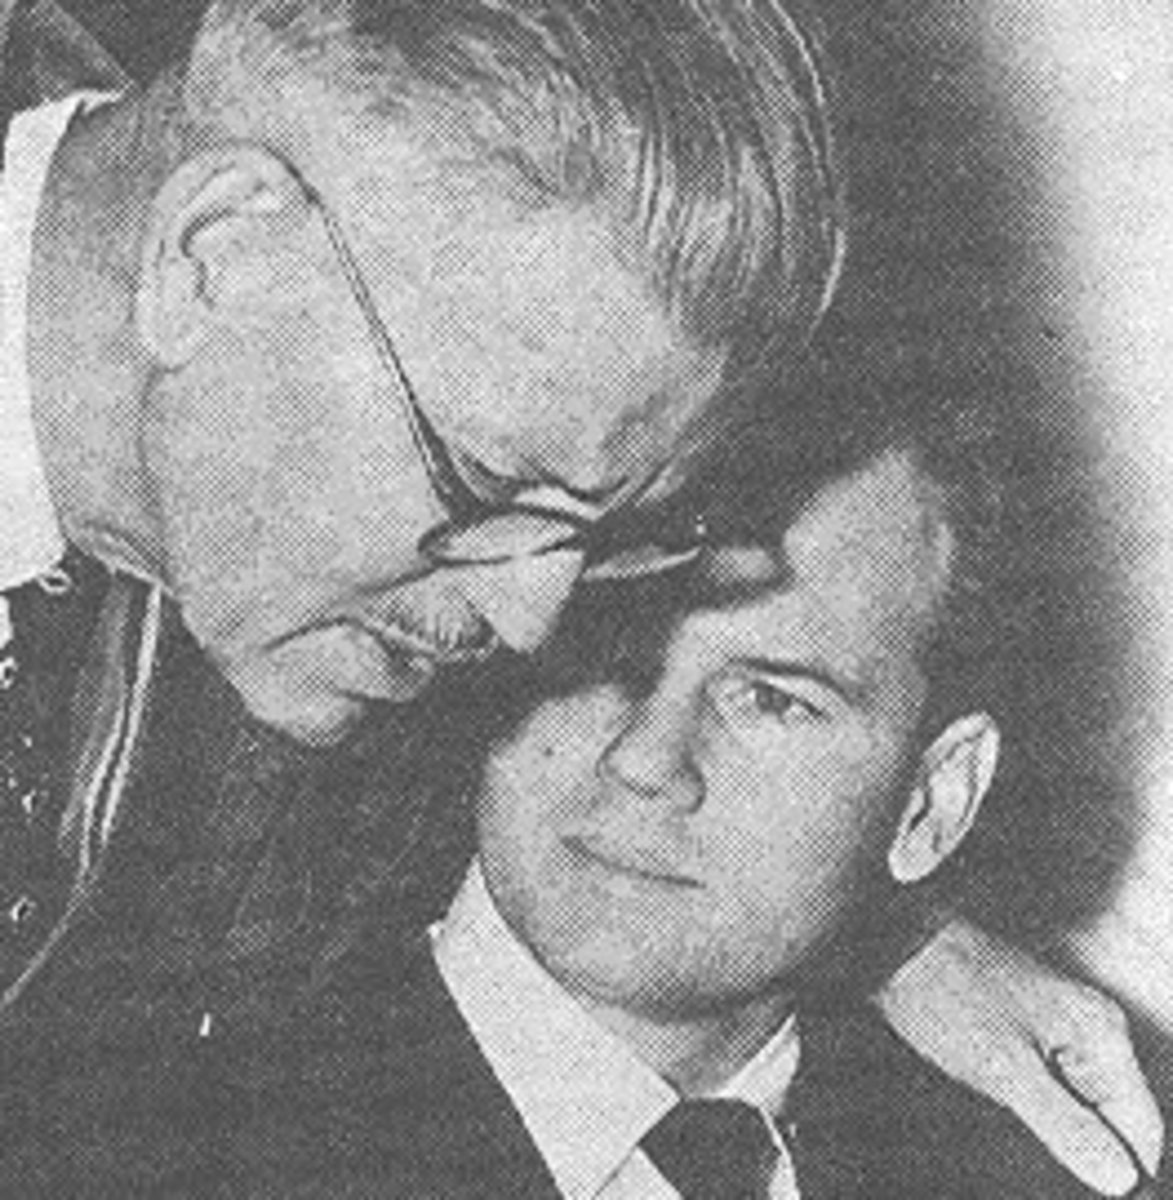 Dr. Sam Sheppard and his Father at trial.